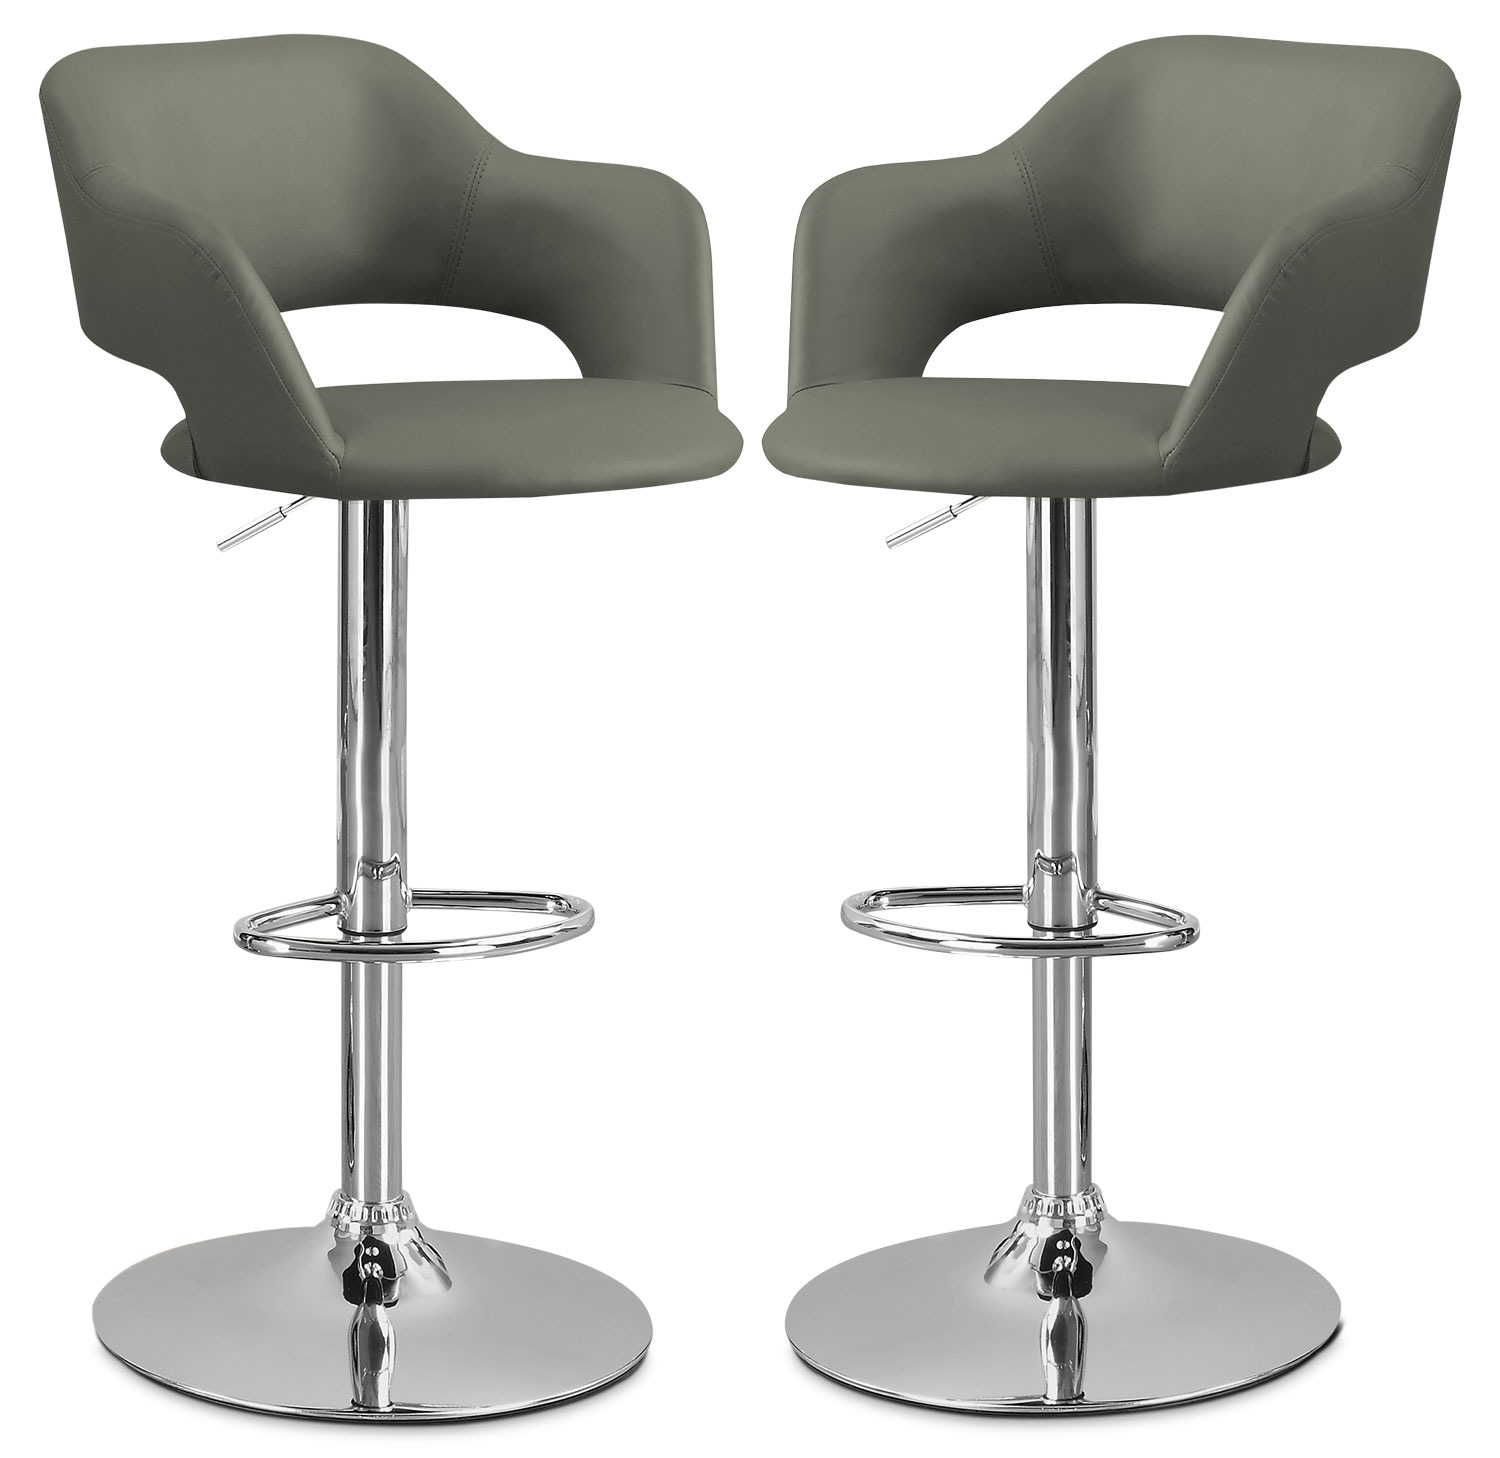 Monarch Hydraulic Contemporary Bar Stool Set Of 2 Grey